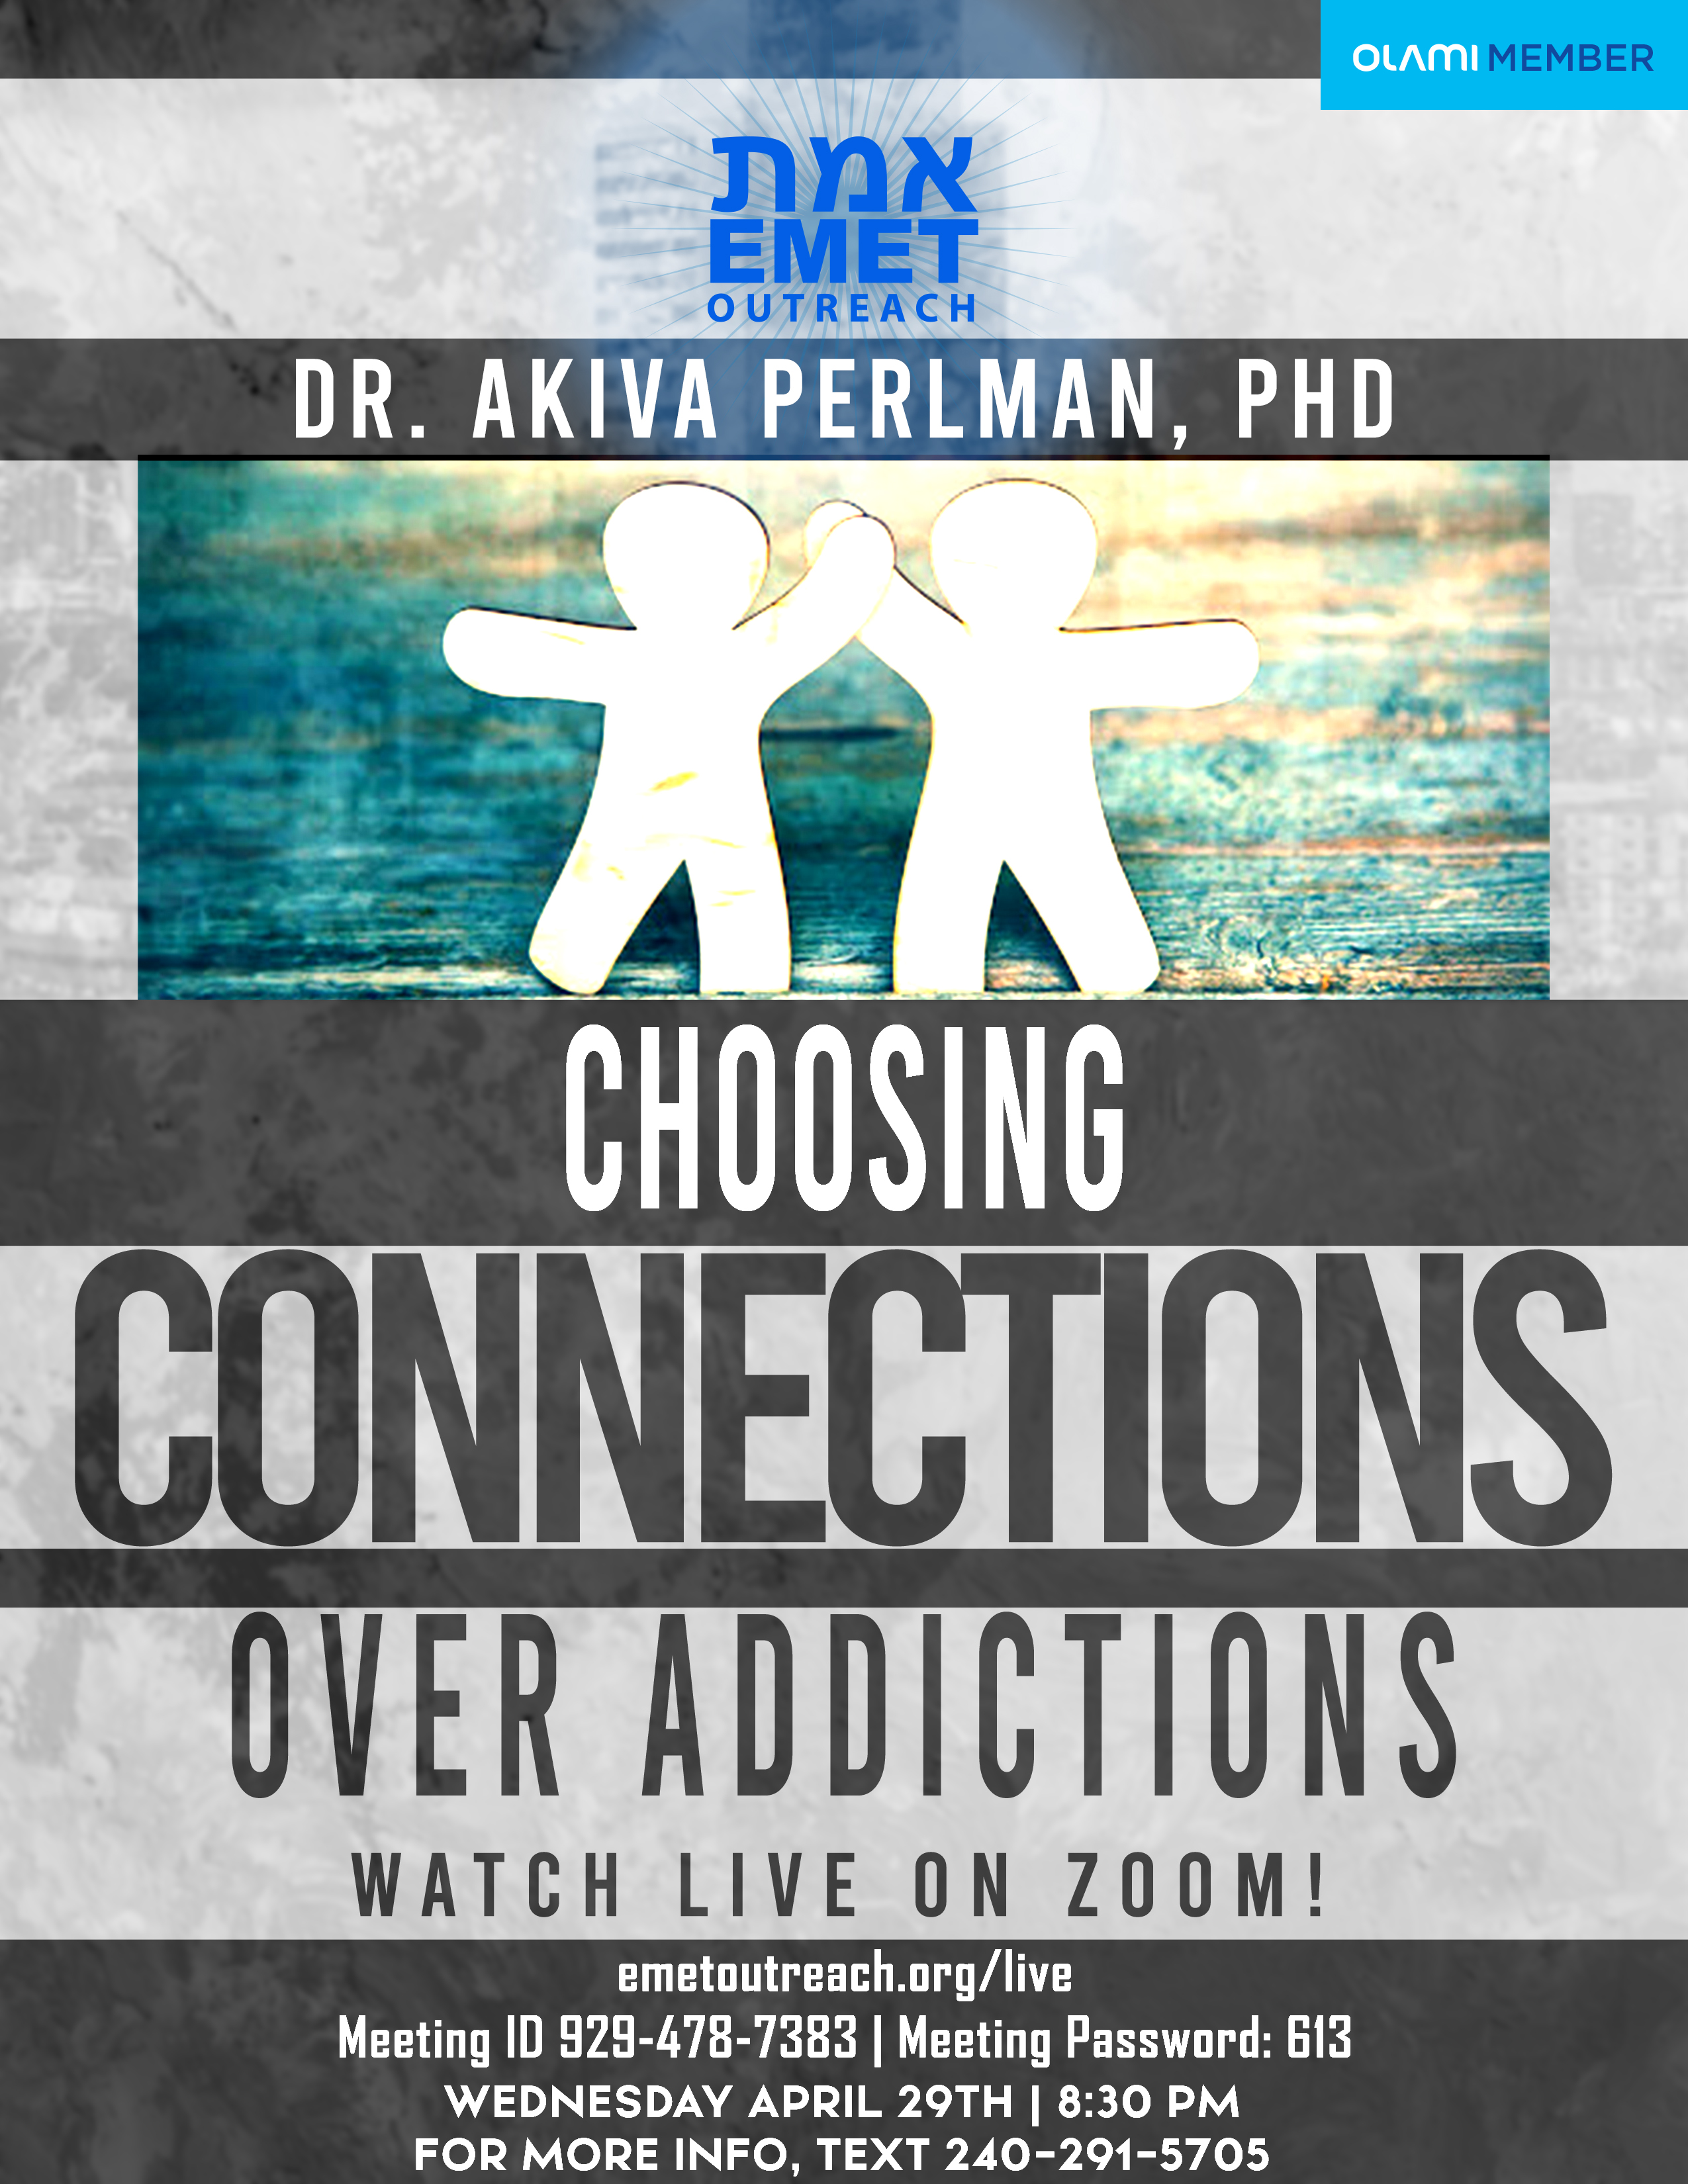 Dr. Perlman Connections Over Addiction 2020 v2